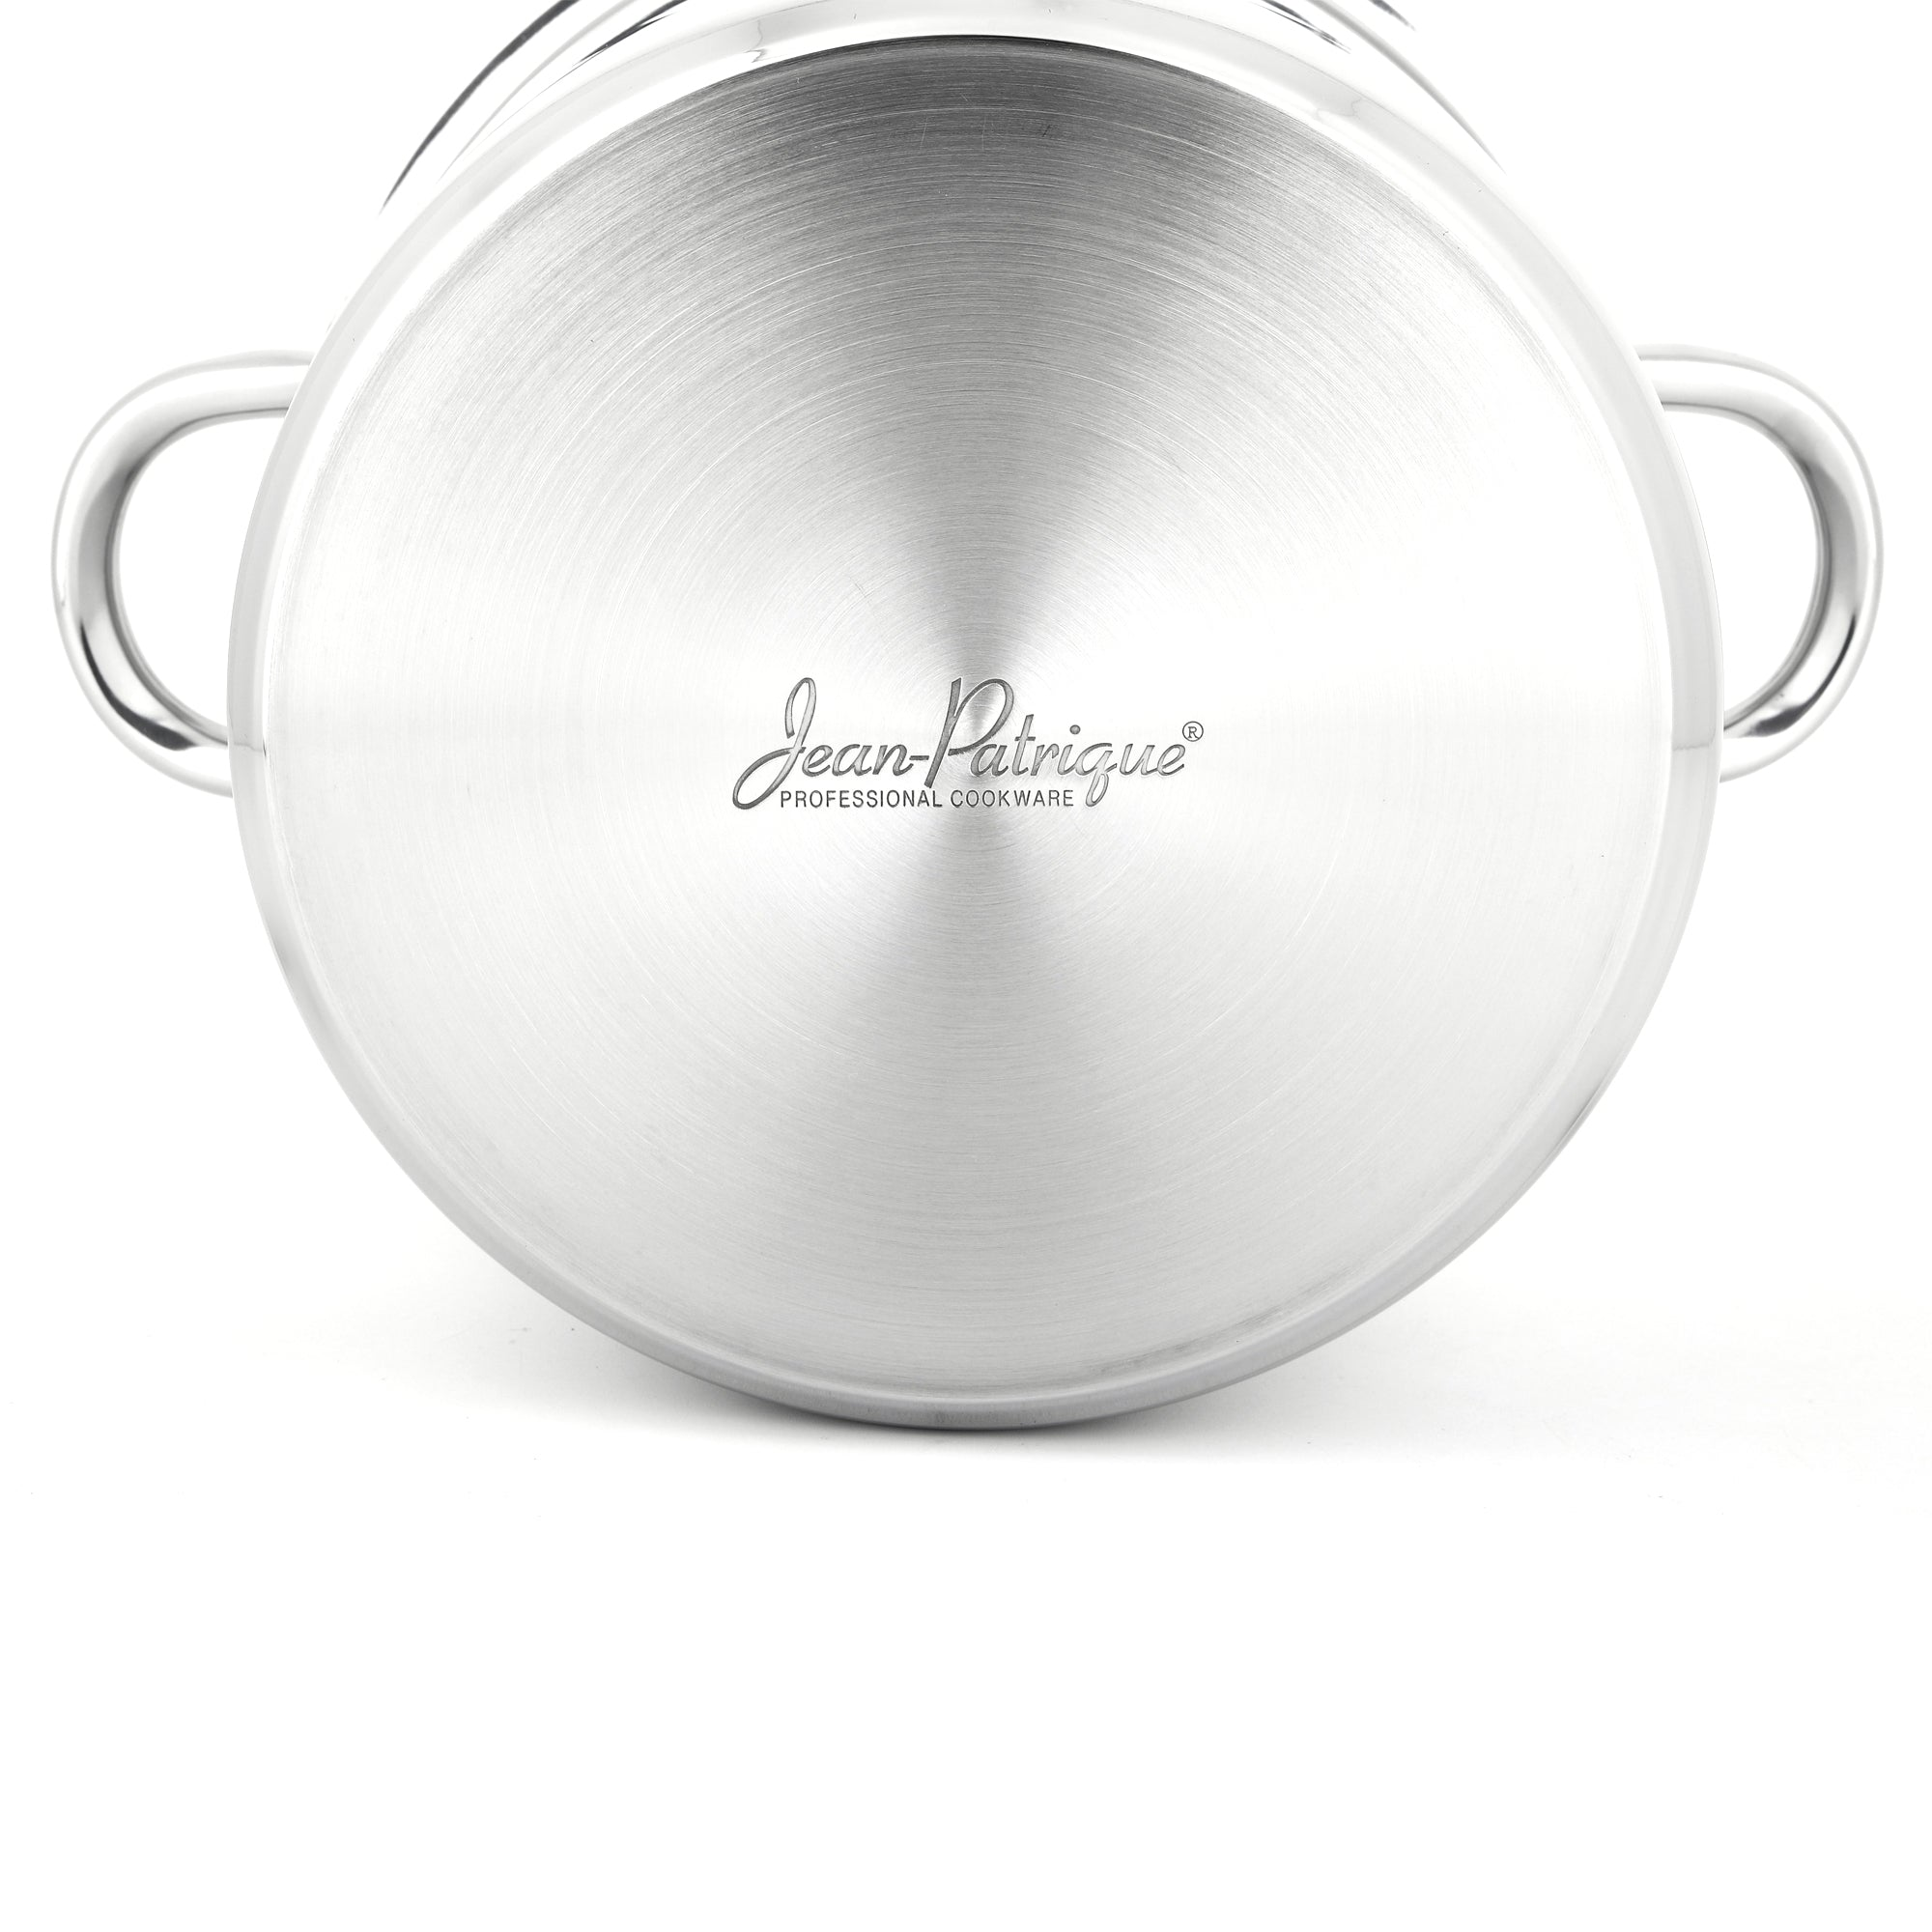 9 2/5 Inch Stainless Steel Stockpot & Lid